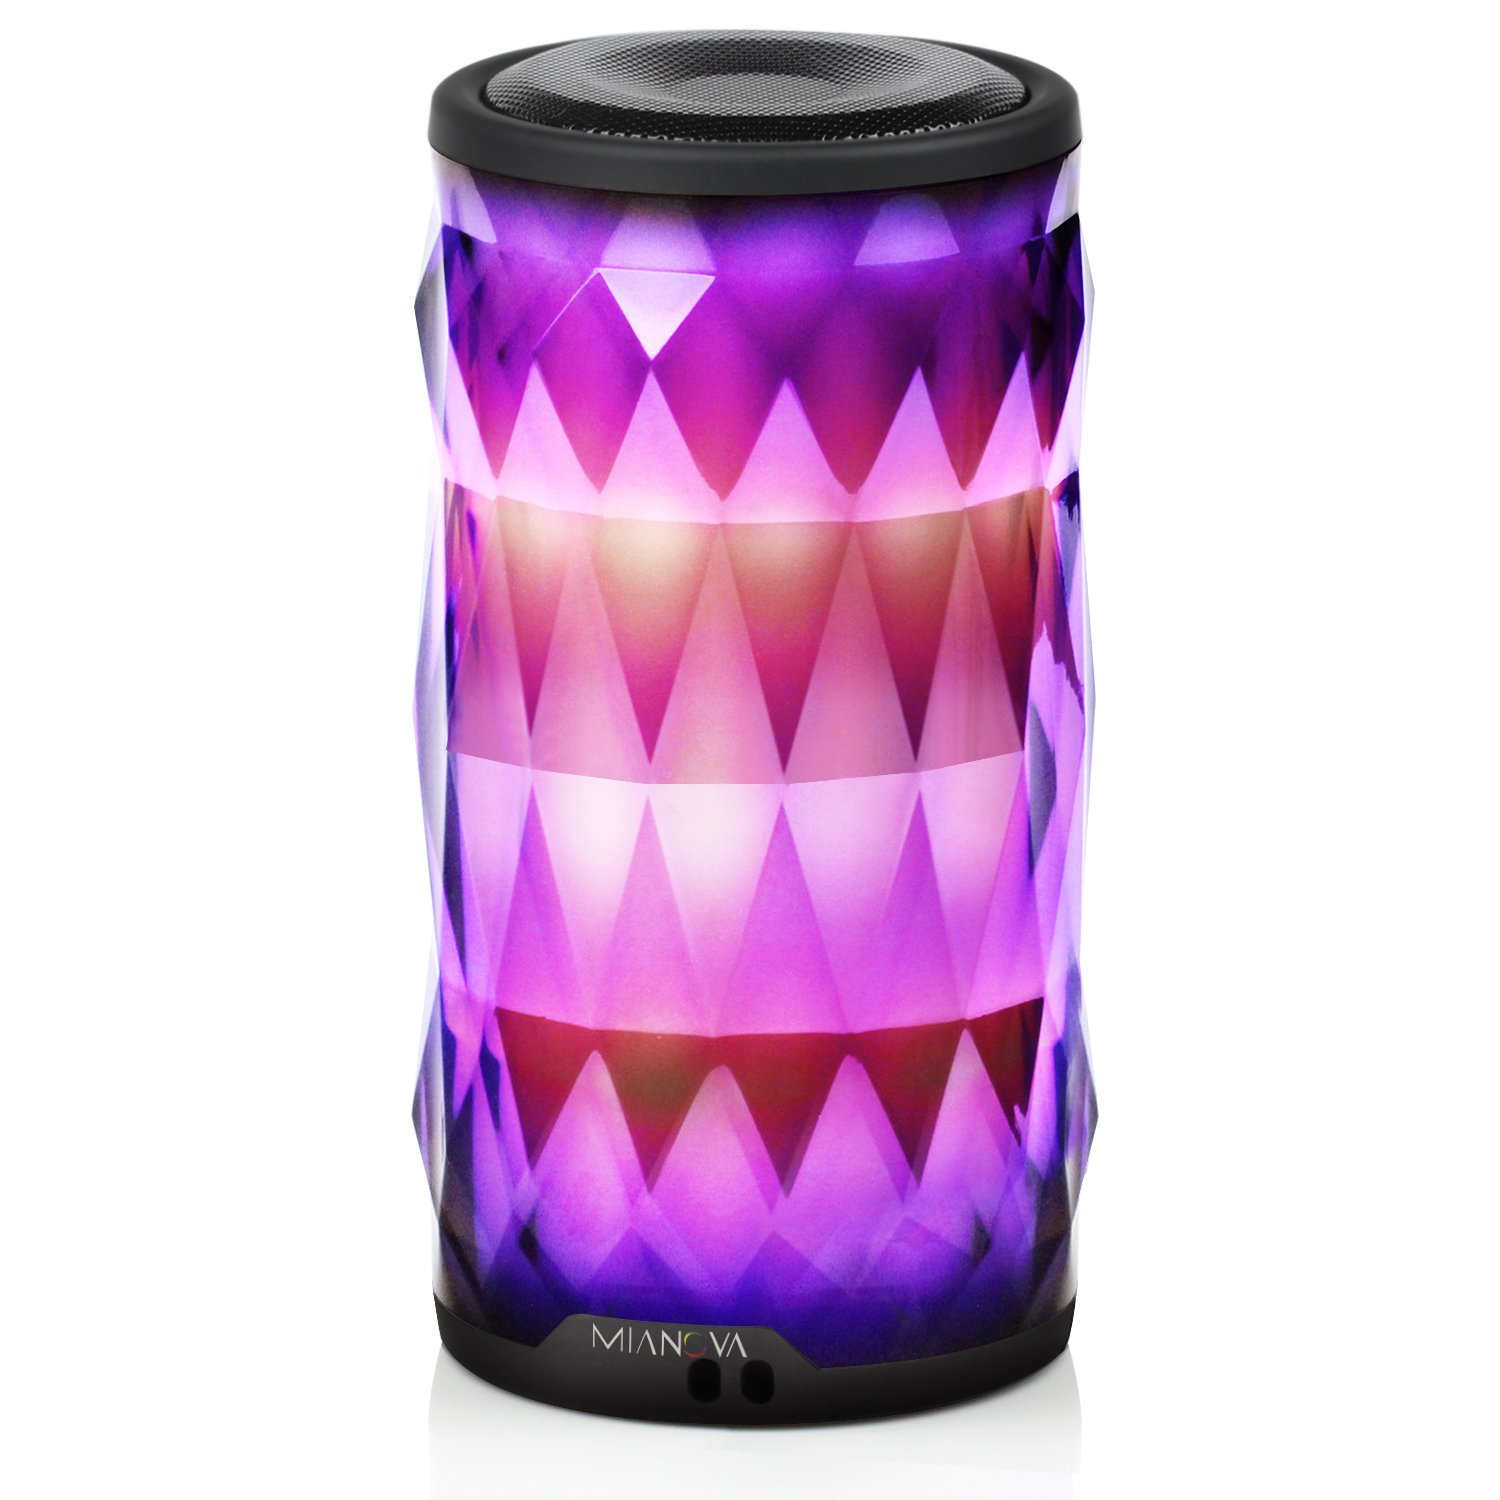 LED Bluetooth Speaker,Night Light Changing Wireless Speaker,MIANOVA Portable Wireless Bluetooth Speaker 6 Color LED Themes,Handsfree/Phone/ PC/MicroSD/ USB Disk/AUX-in/TWS Supported